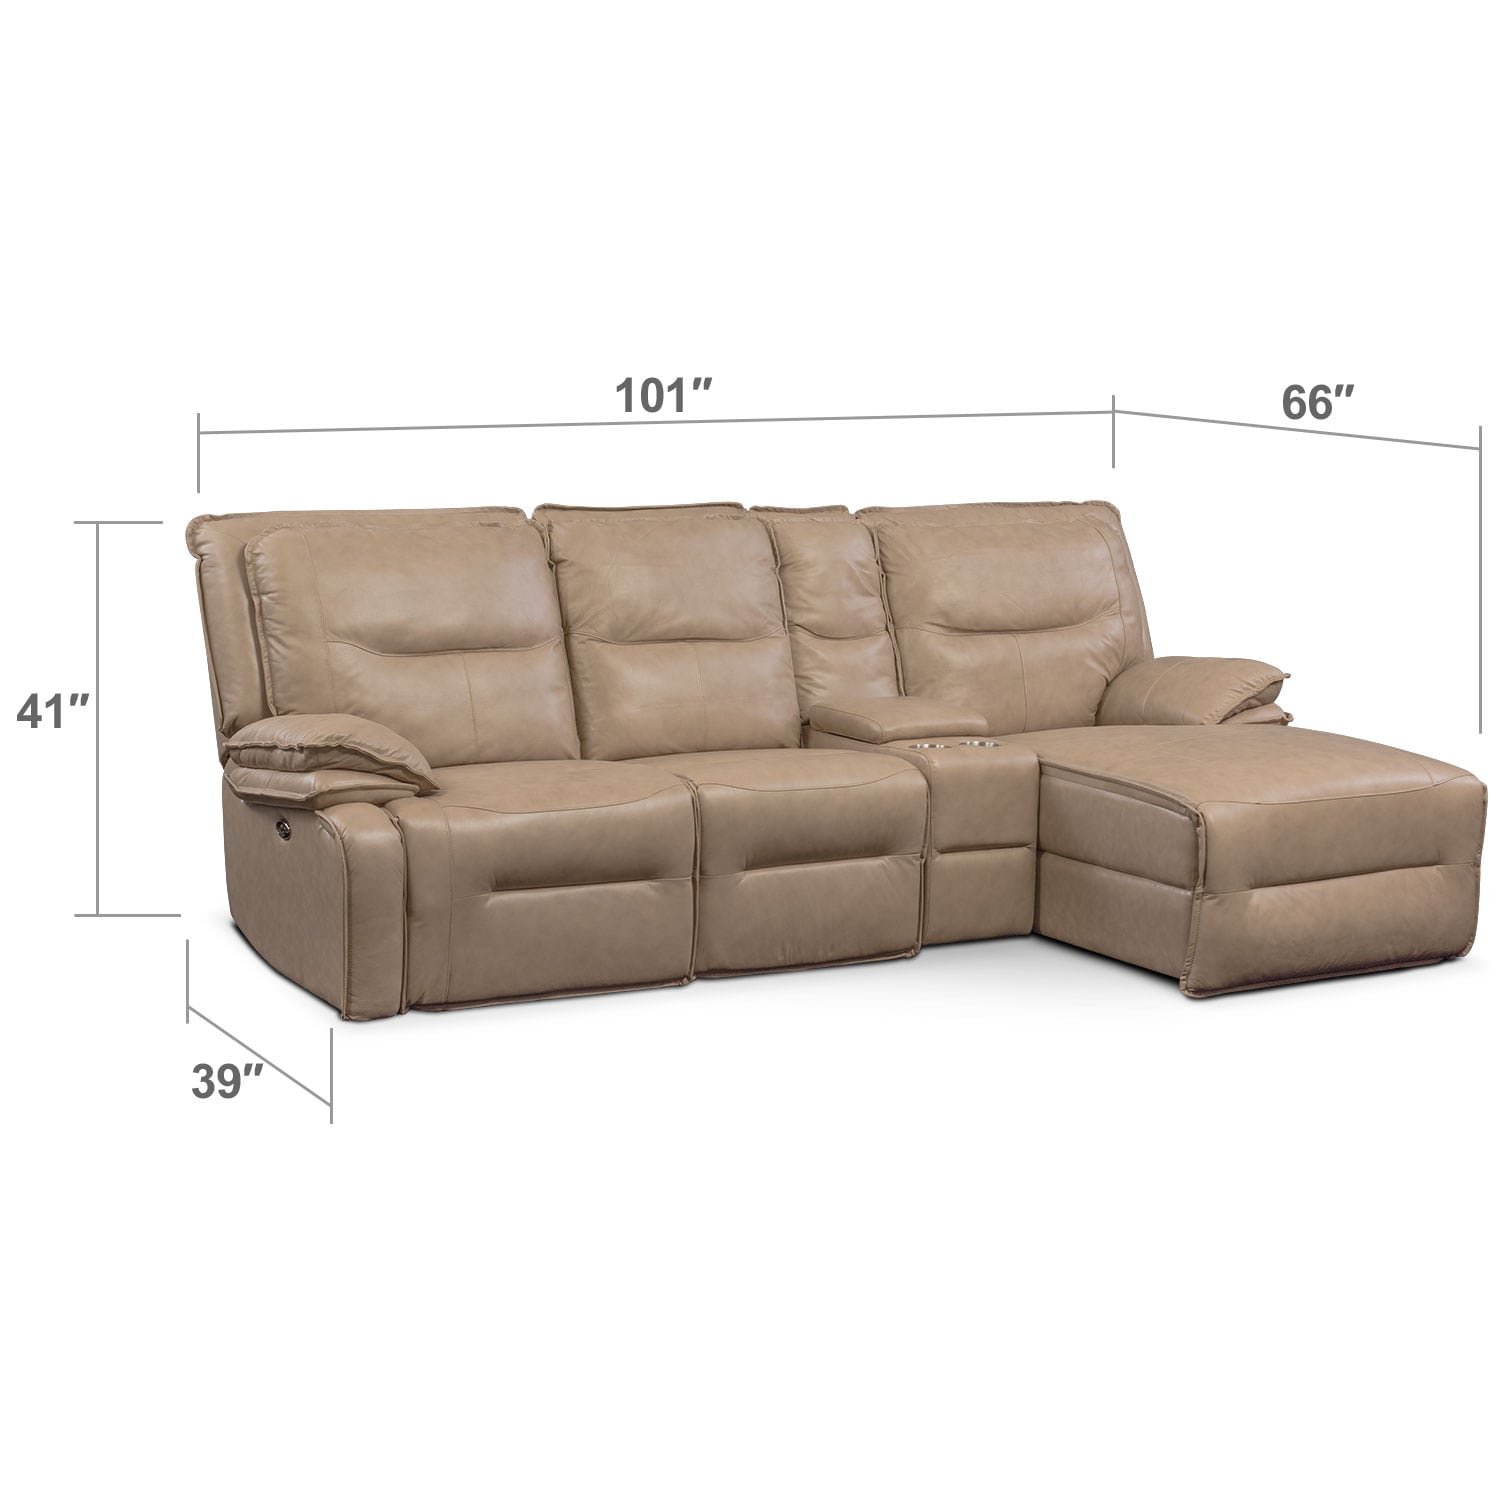 Living Room Furniture - Nikki 4-Piece Power Reclining Sectional with Right-Facing Chaise - Taupe